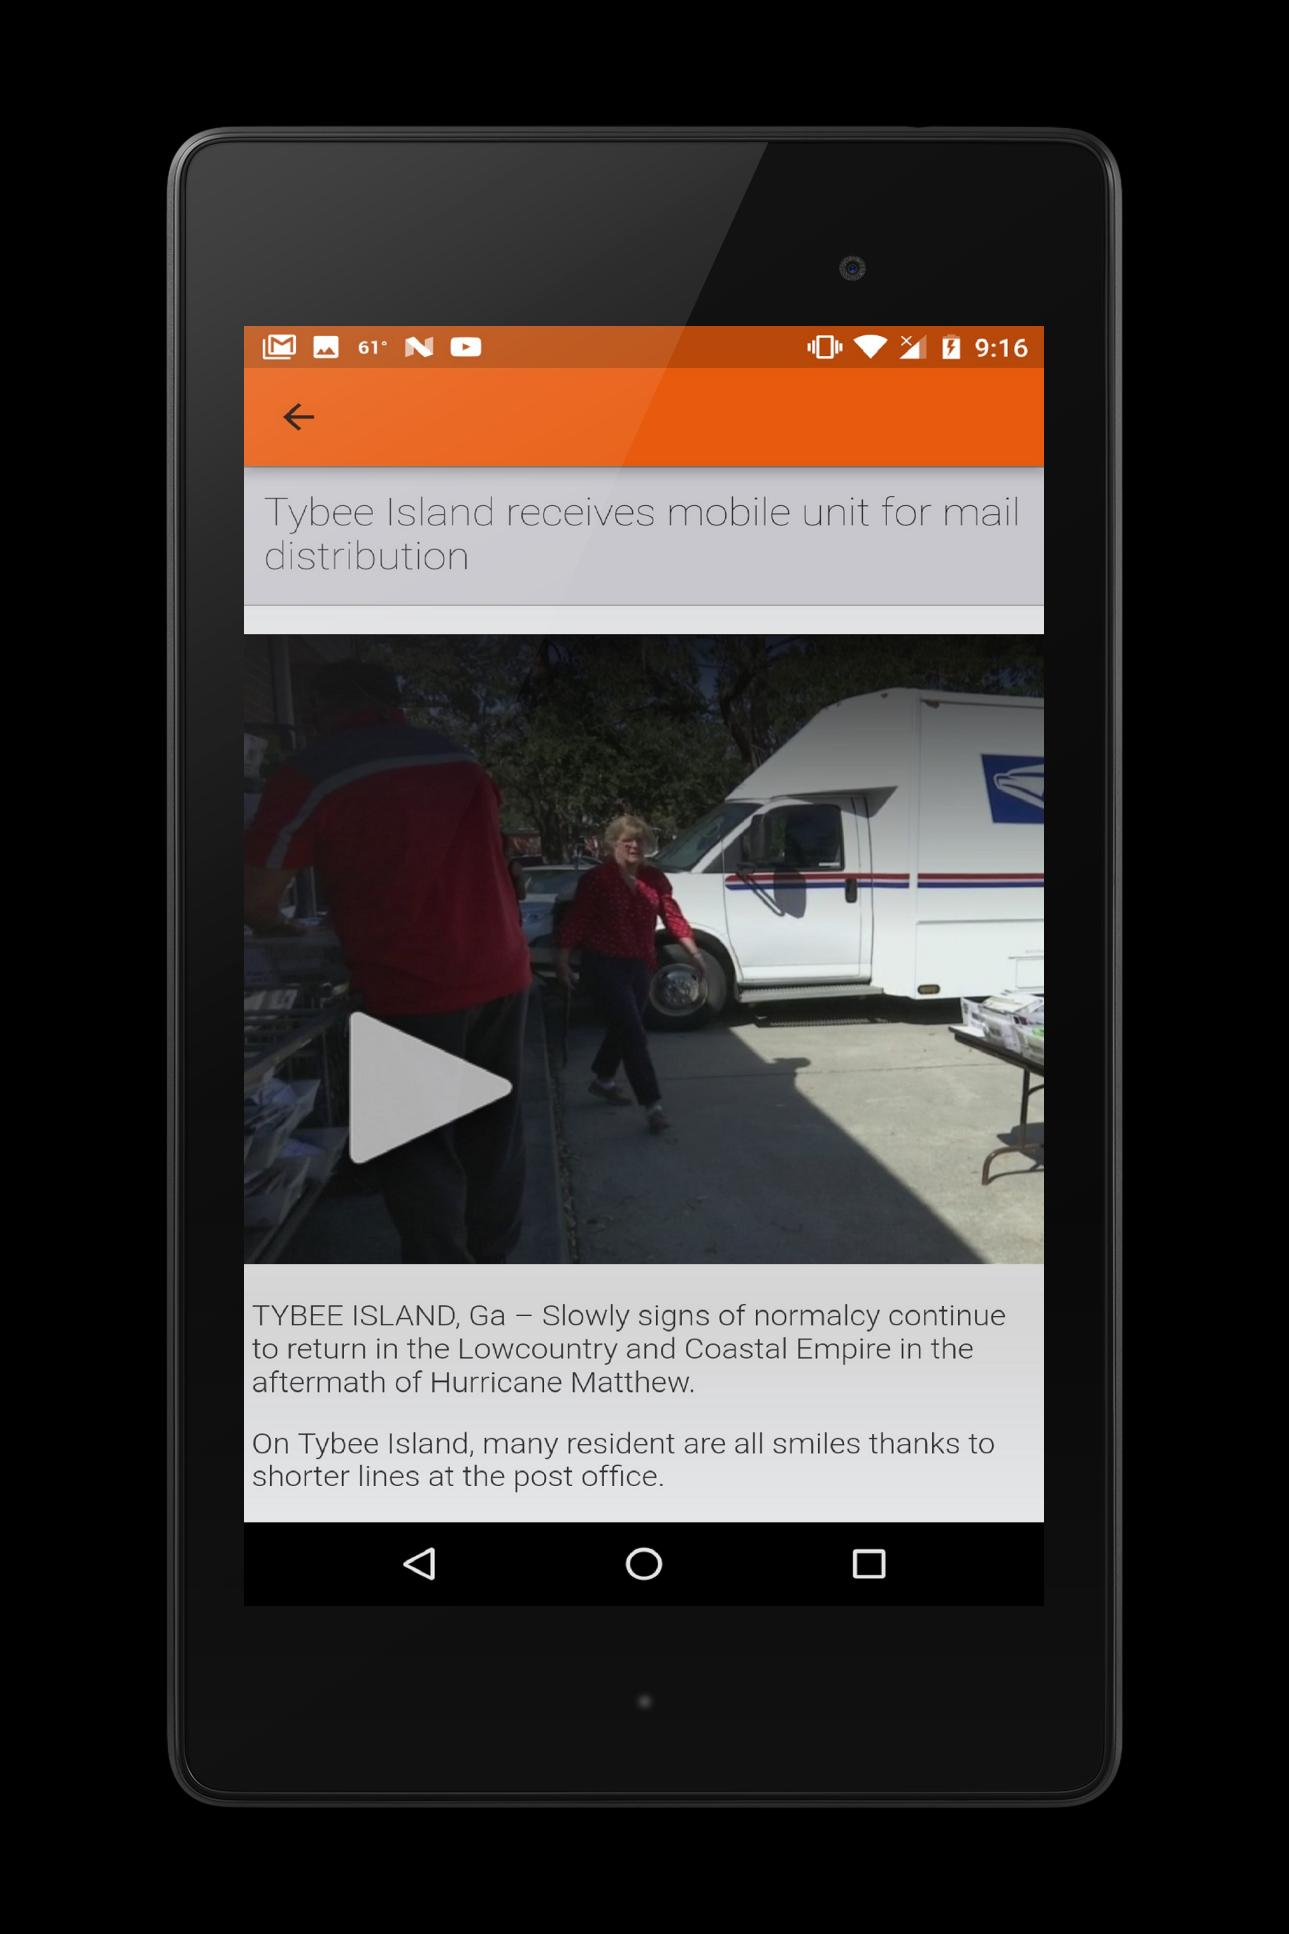 Atlanta Ga News App For Android Apk Download